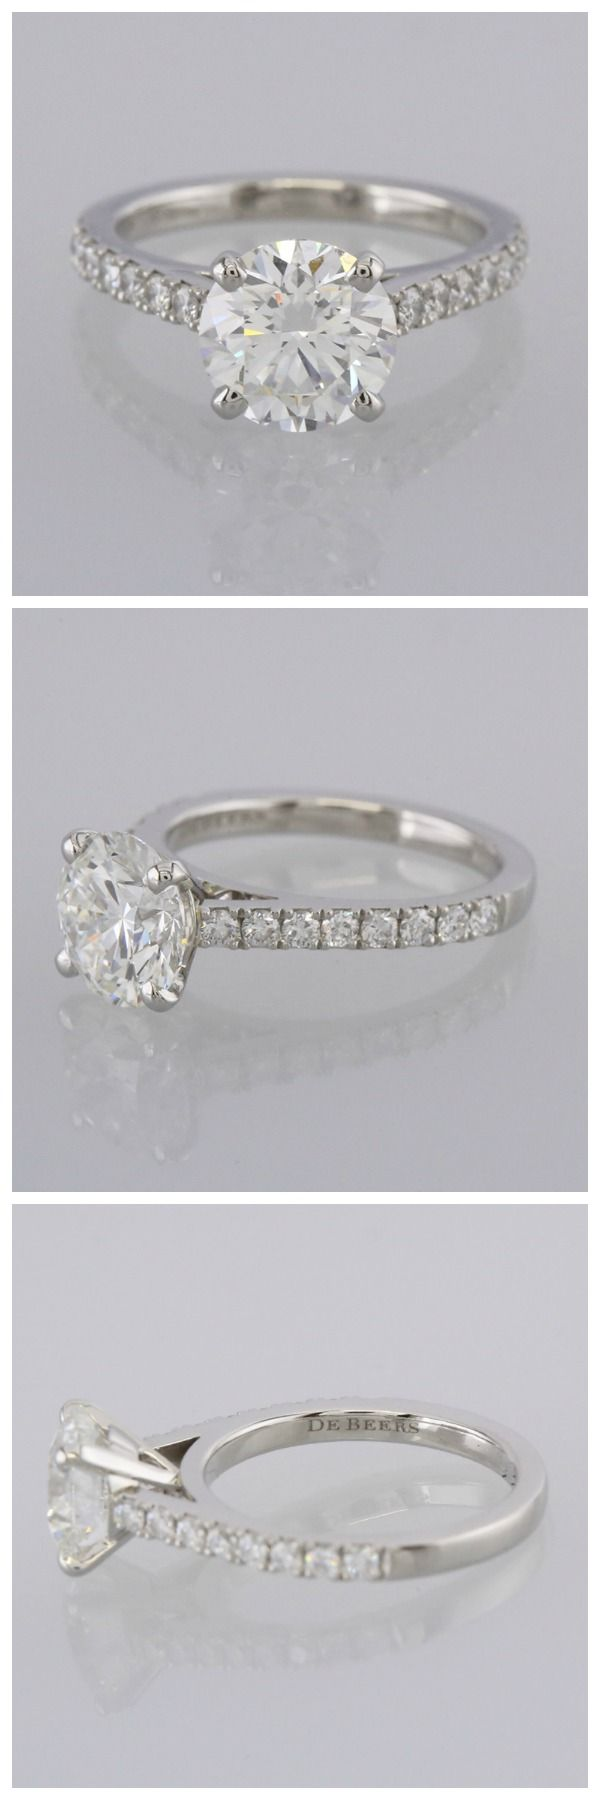 De beers diamond solitaire engagement ring accessories pinterest